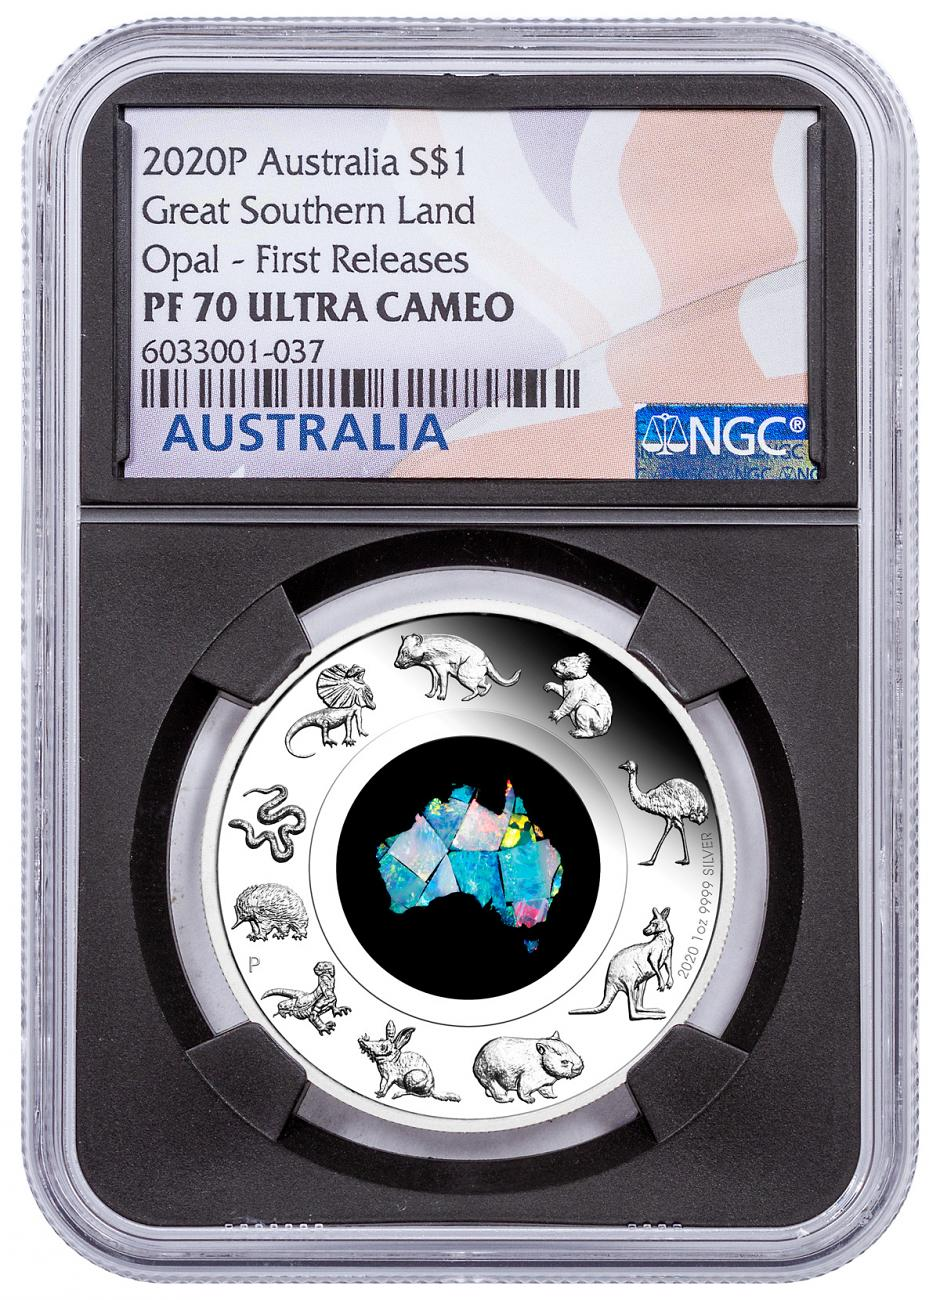 2020-P Australia $1 1 oz Silver Great Southern Land Opal High Relief Proof Coin NGC PF70 UC FR Black Core Holder Australia Flag Label